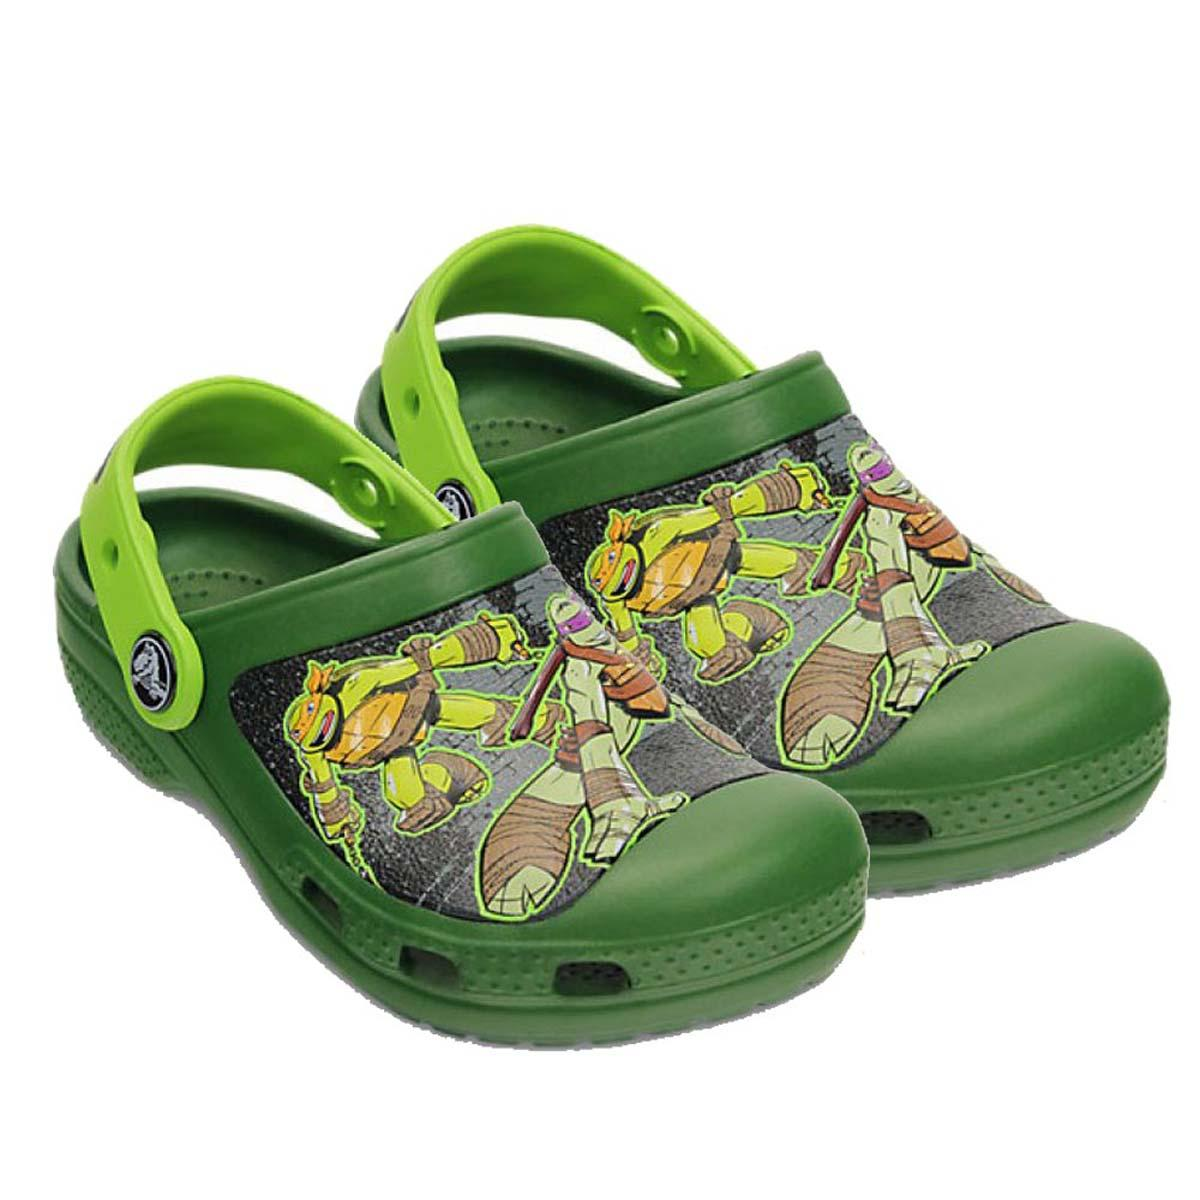 Crocs Cc Tmnt Kids Clog Sea Volt Green Online At Lowest Price In India